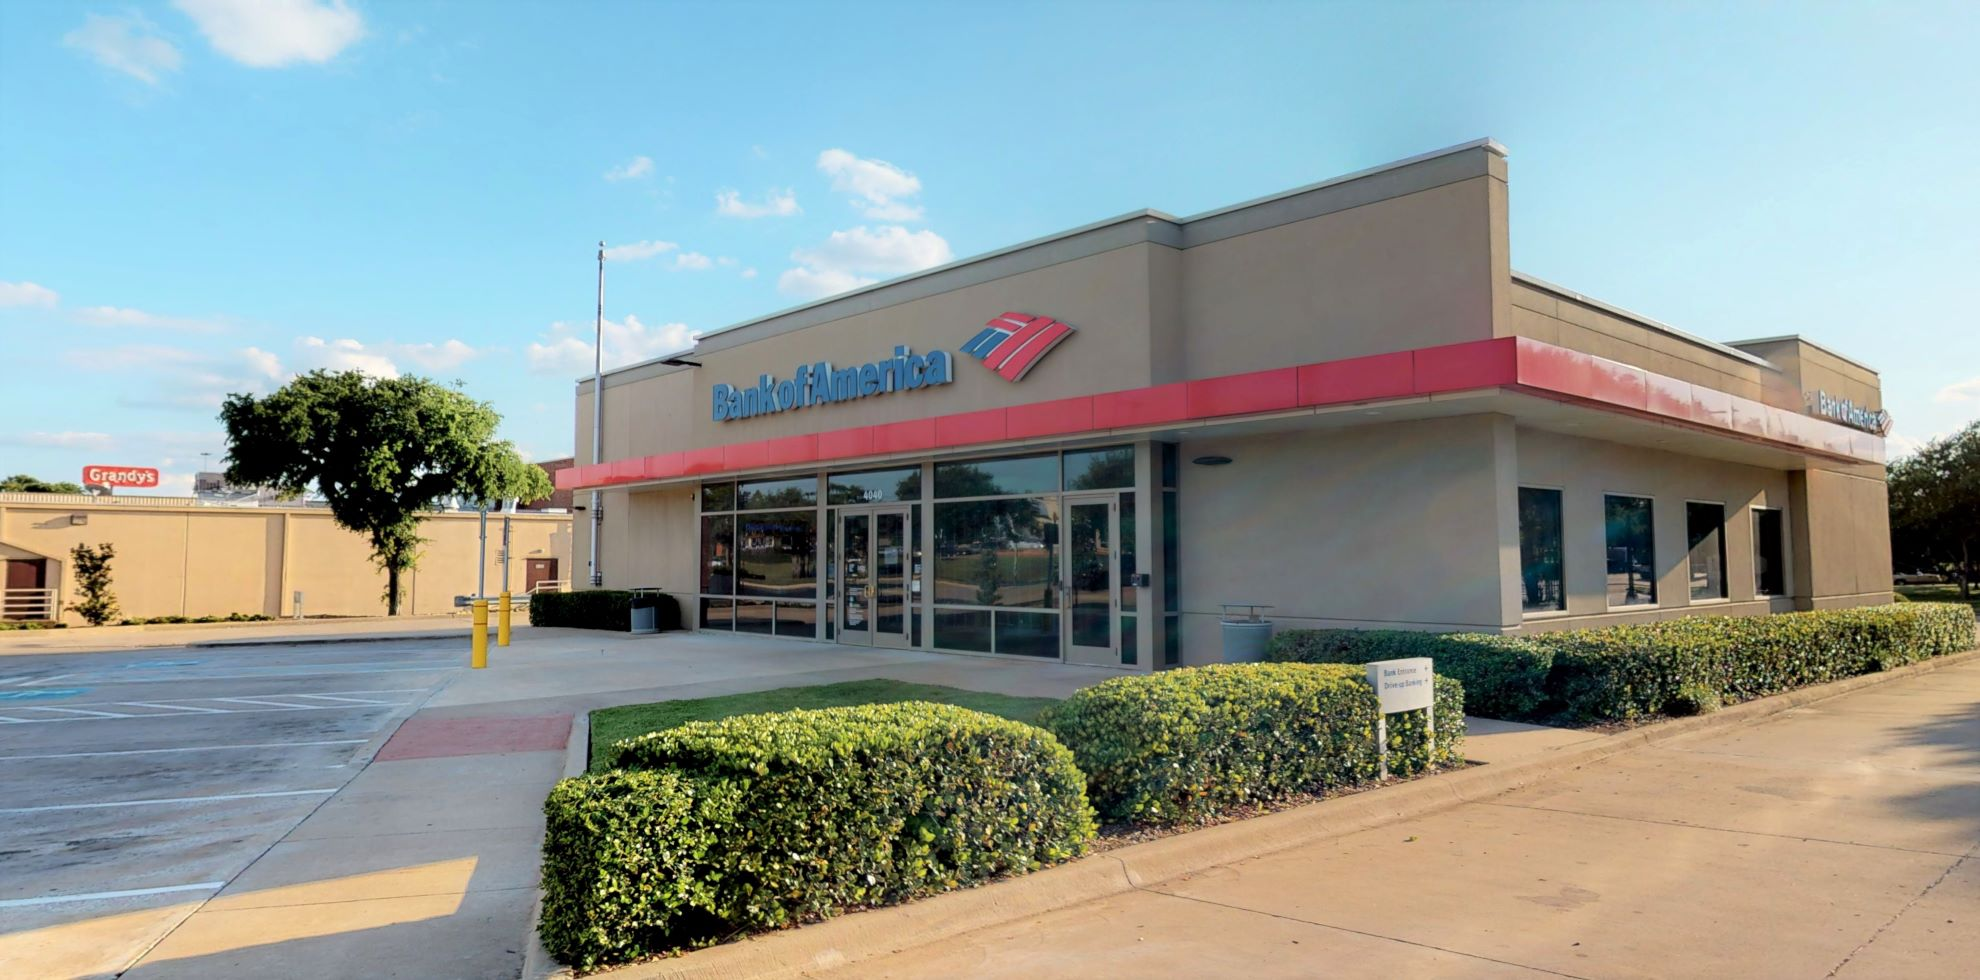 Bank of America financial center with drive-thru ATM | 4040 S Cooper St, Arlington, TX 76015